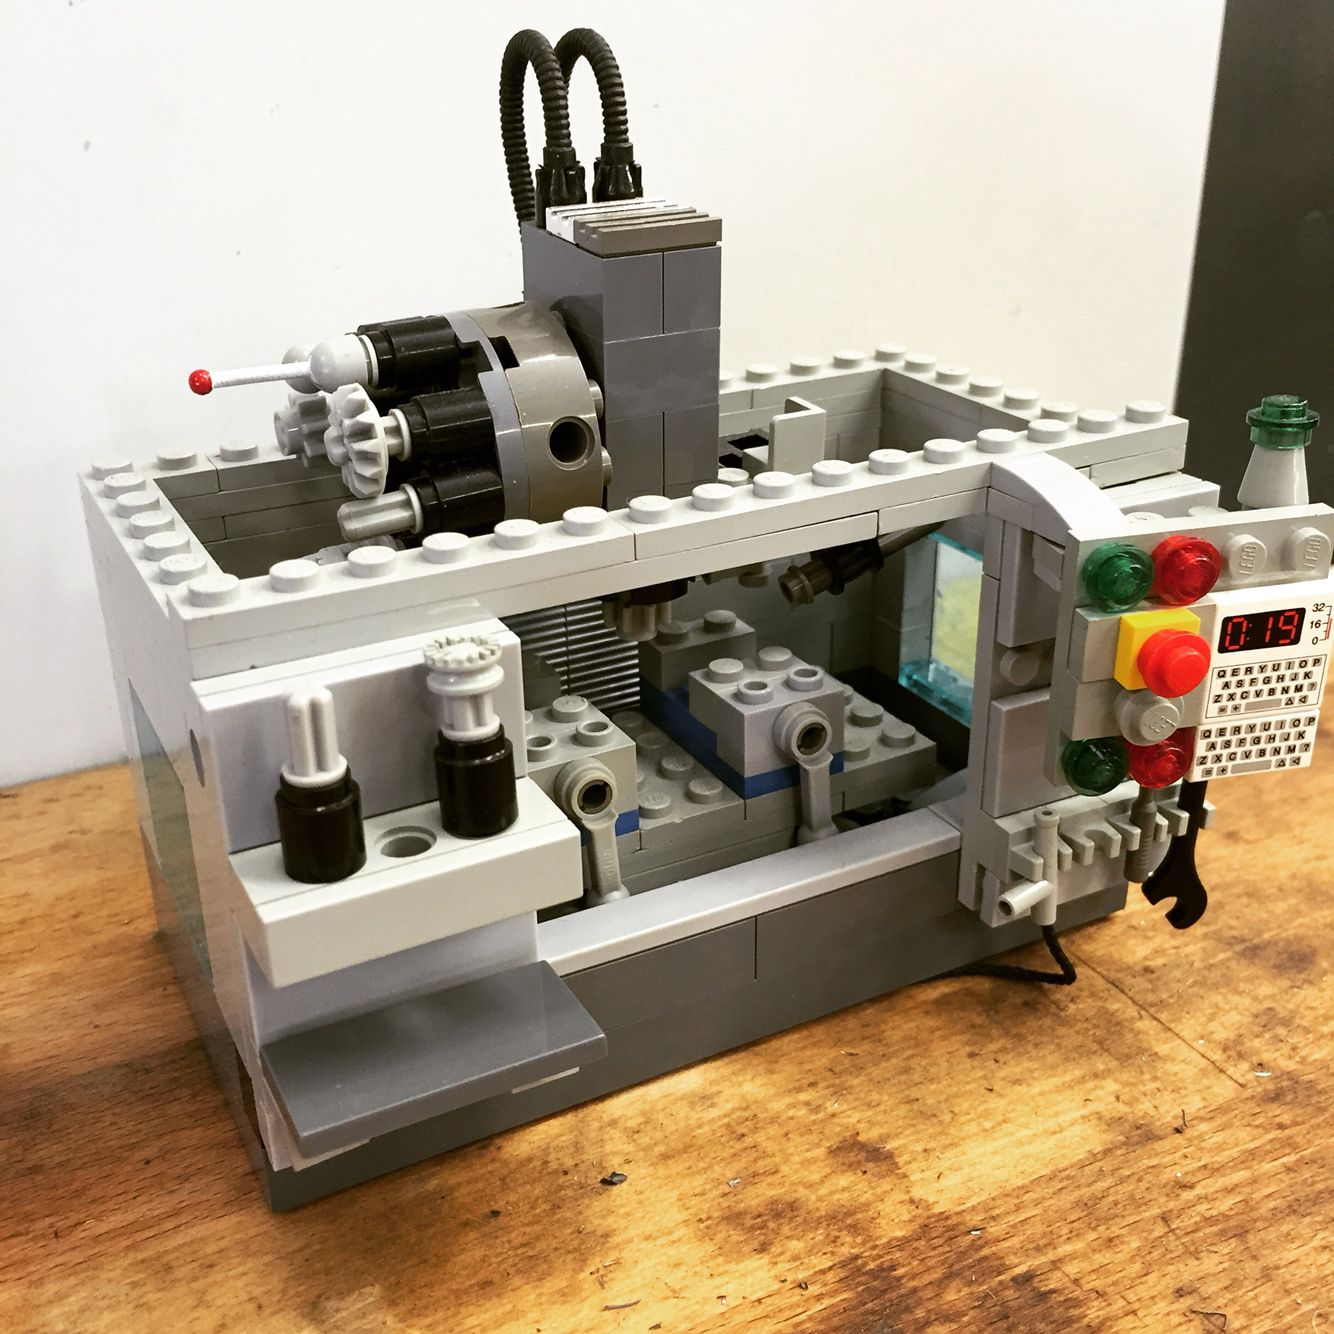 Haas Cnc @tyson_lamb Built From Legos. Saw This On